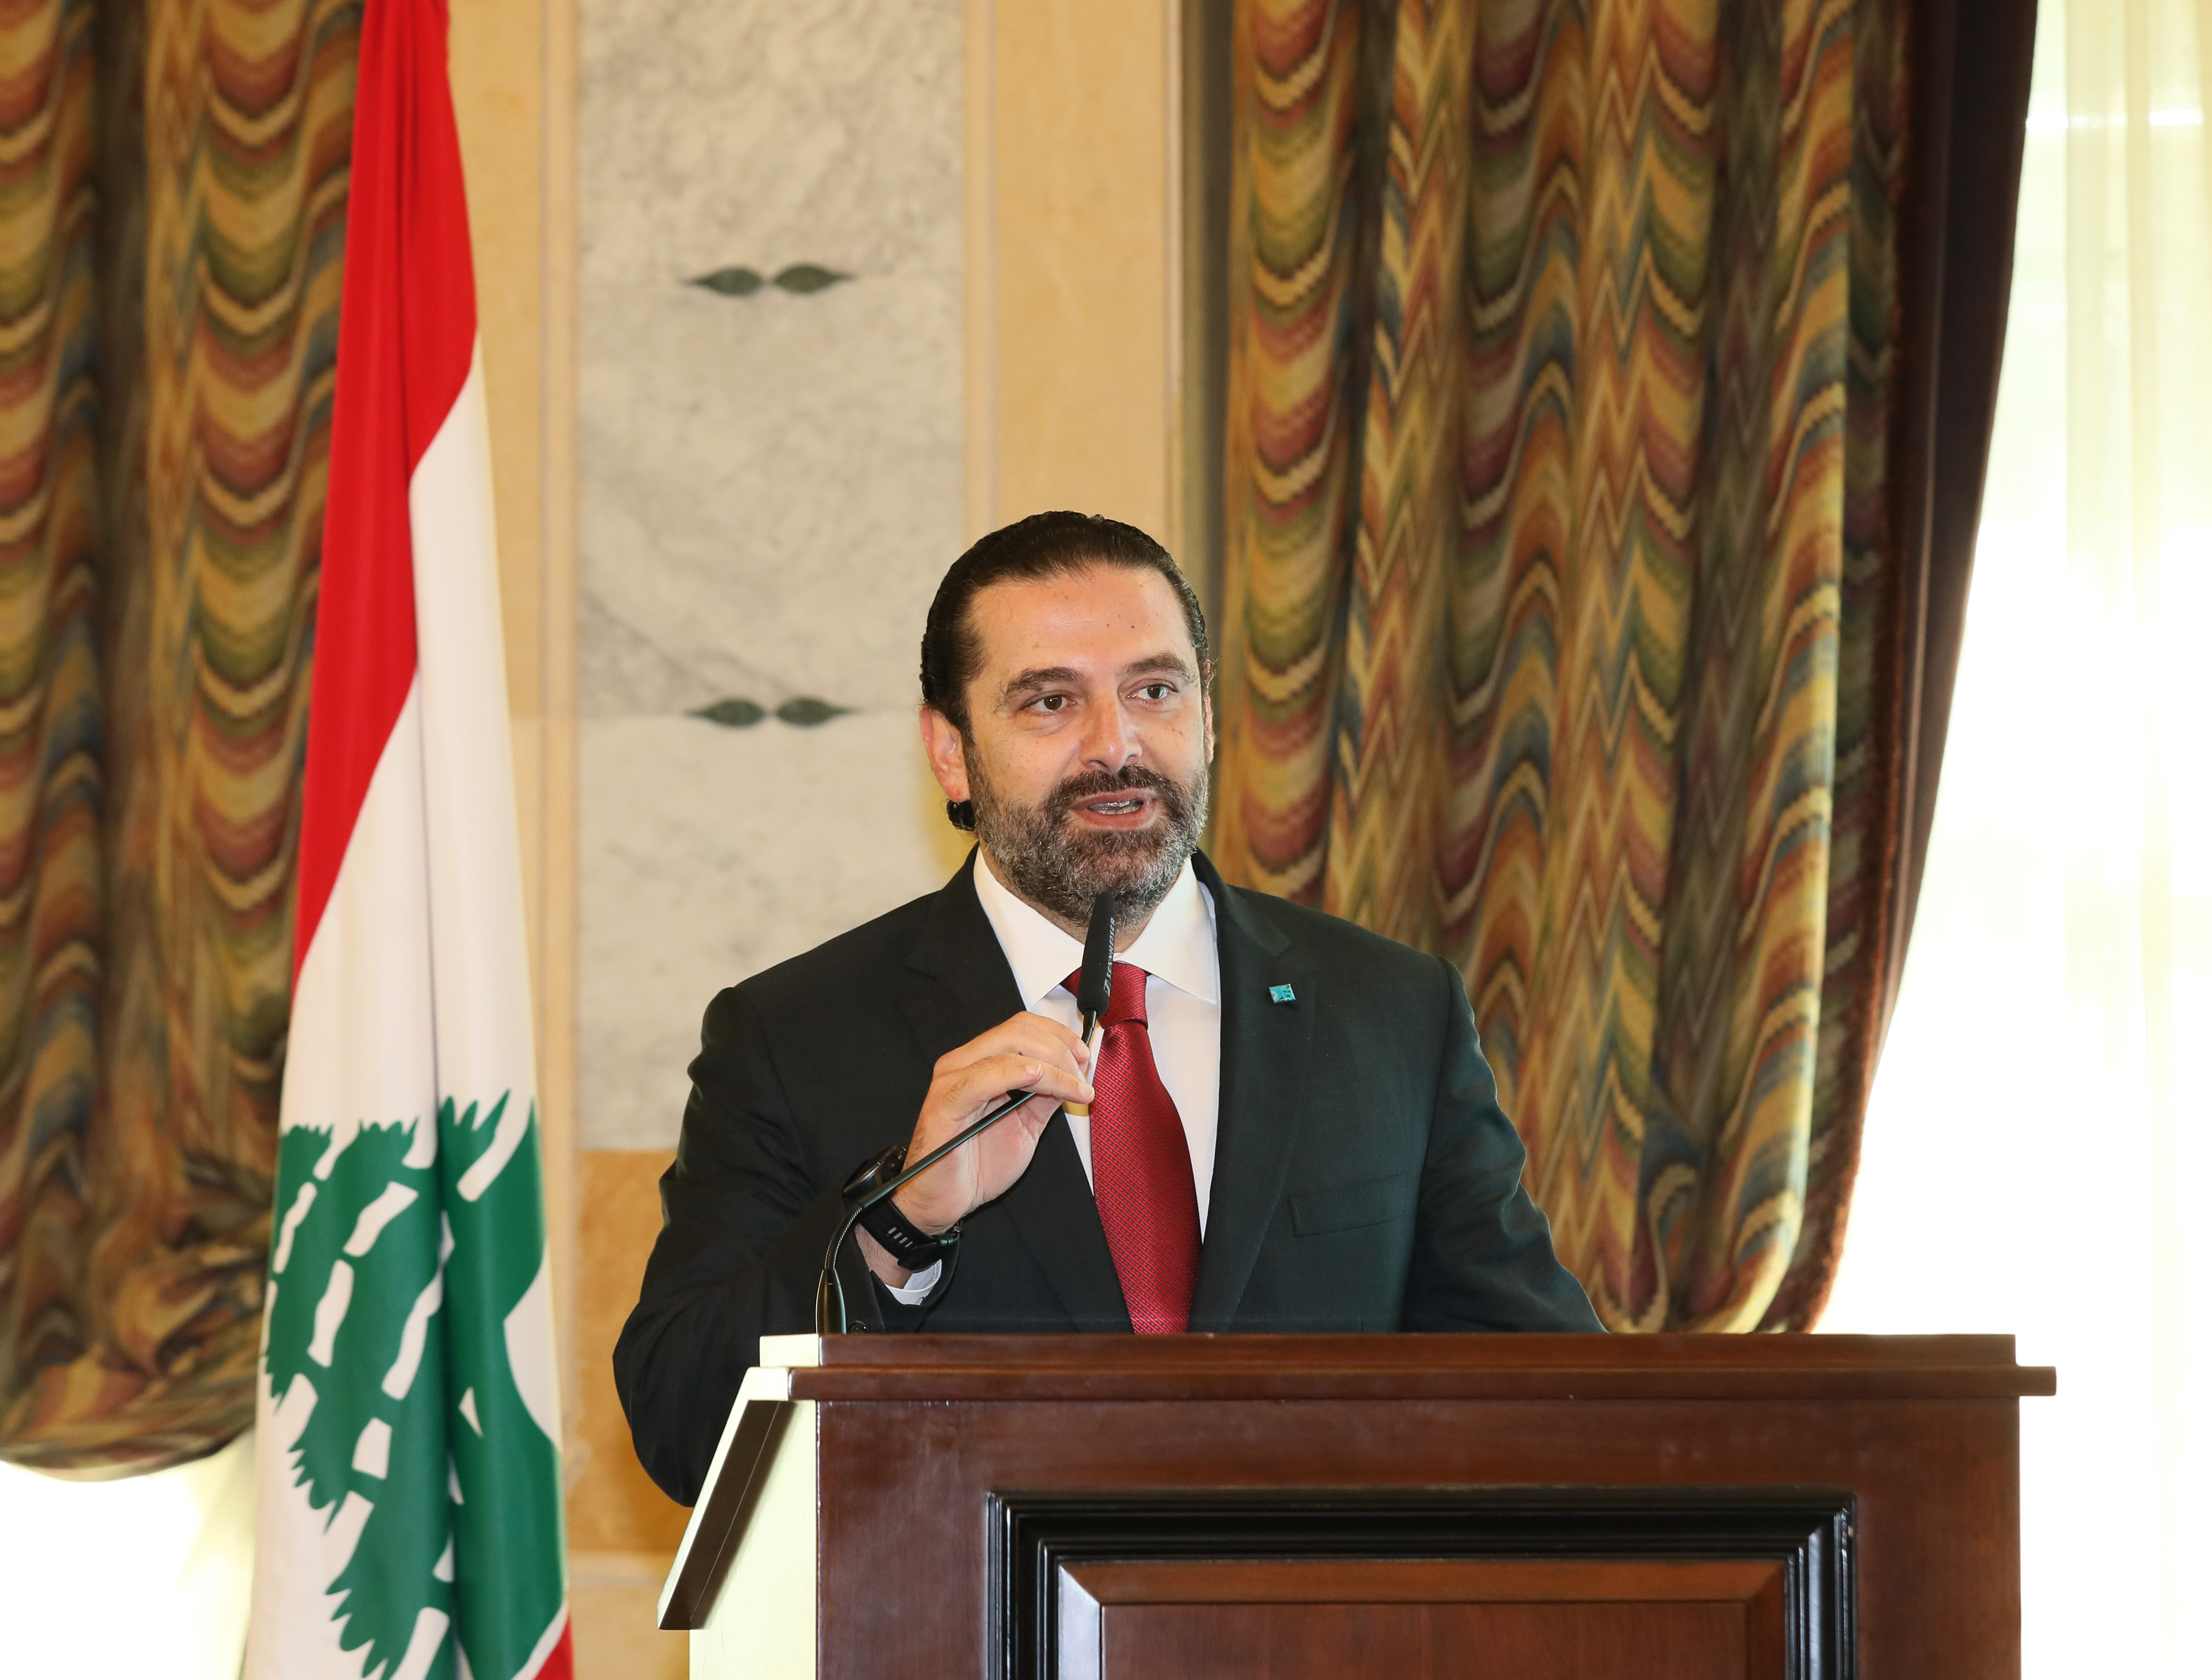 Pr Minister Saad Hariri Attends a Tournement at the Grand Serail 1